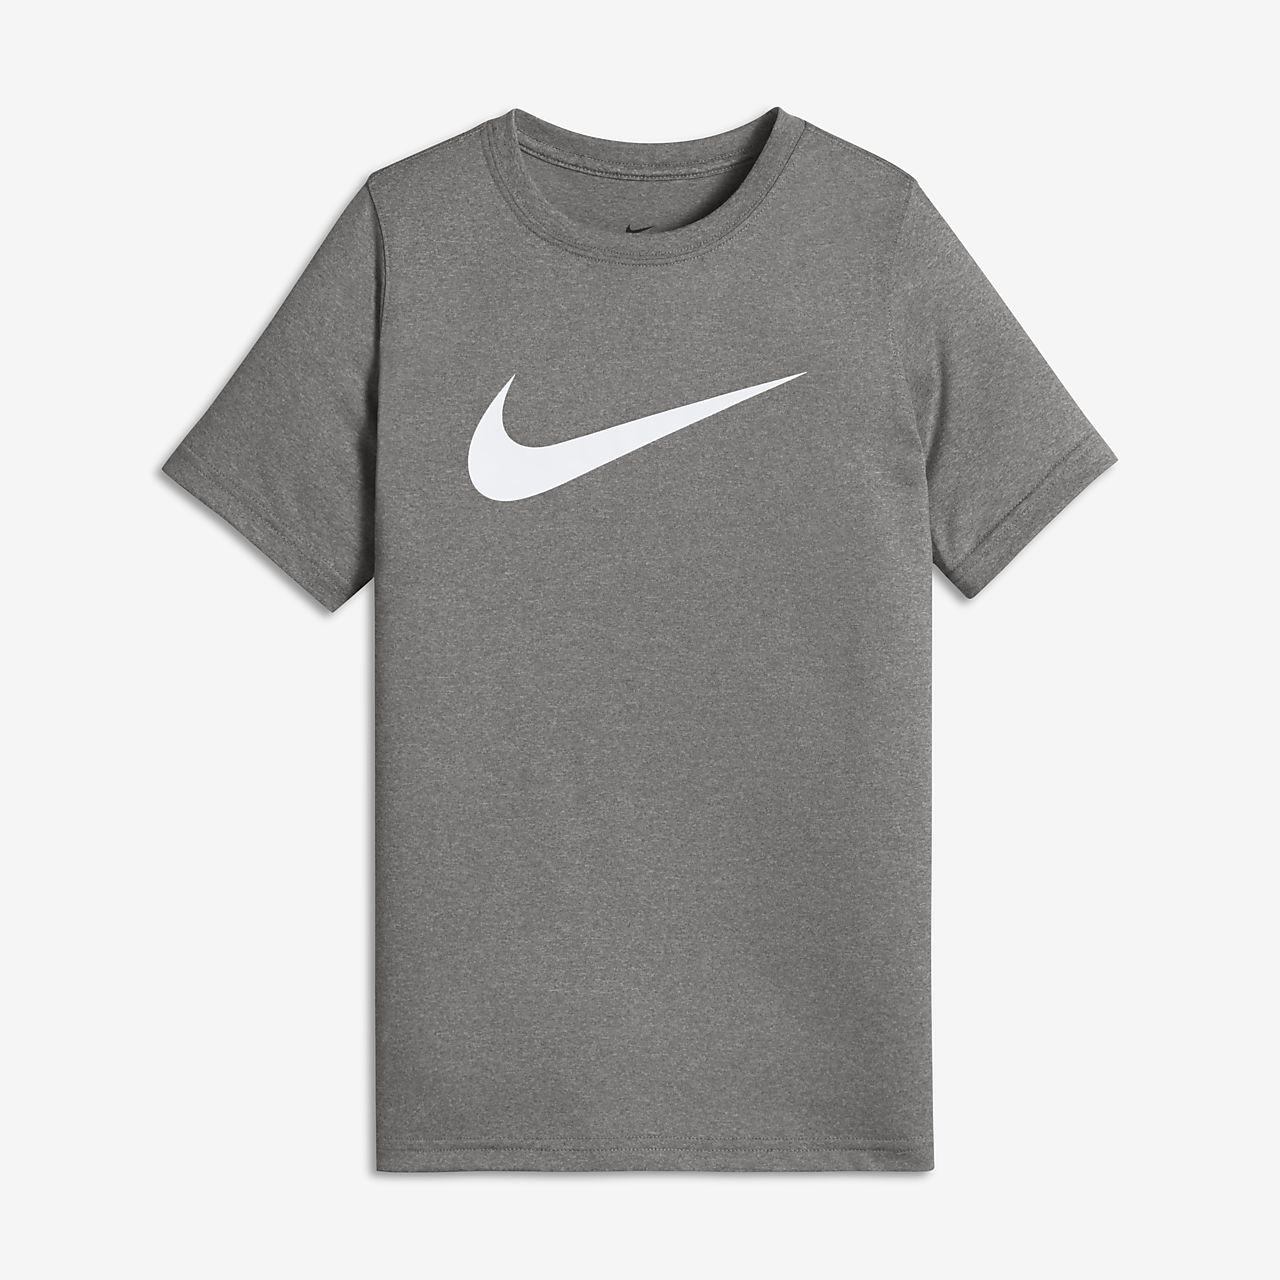 ... Nike Dri-FIT Older Kids' (Boys') Training T-Shirt